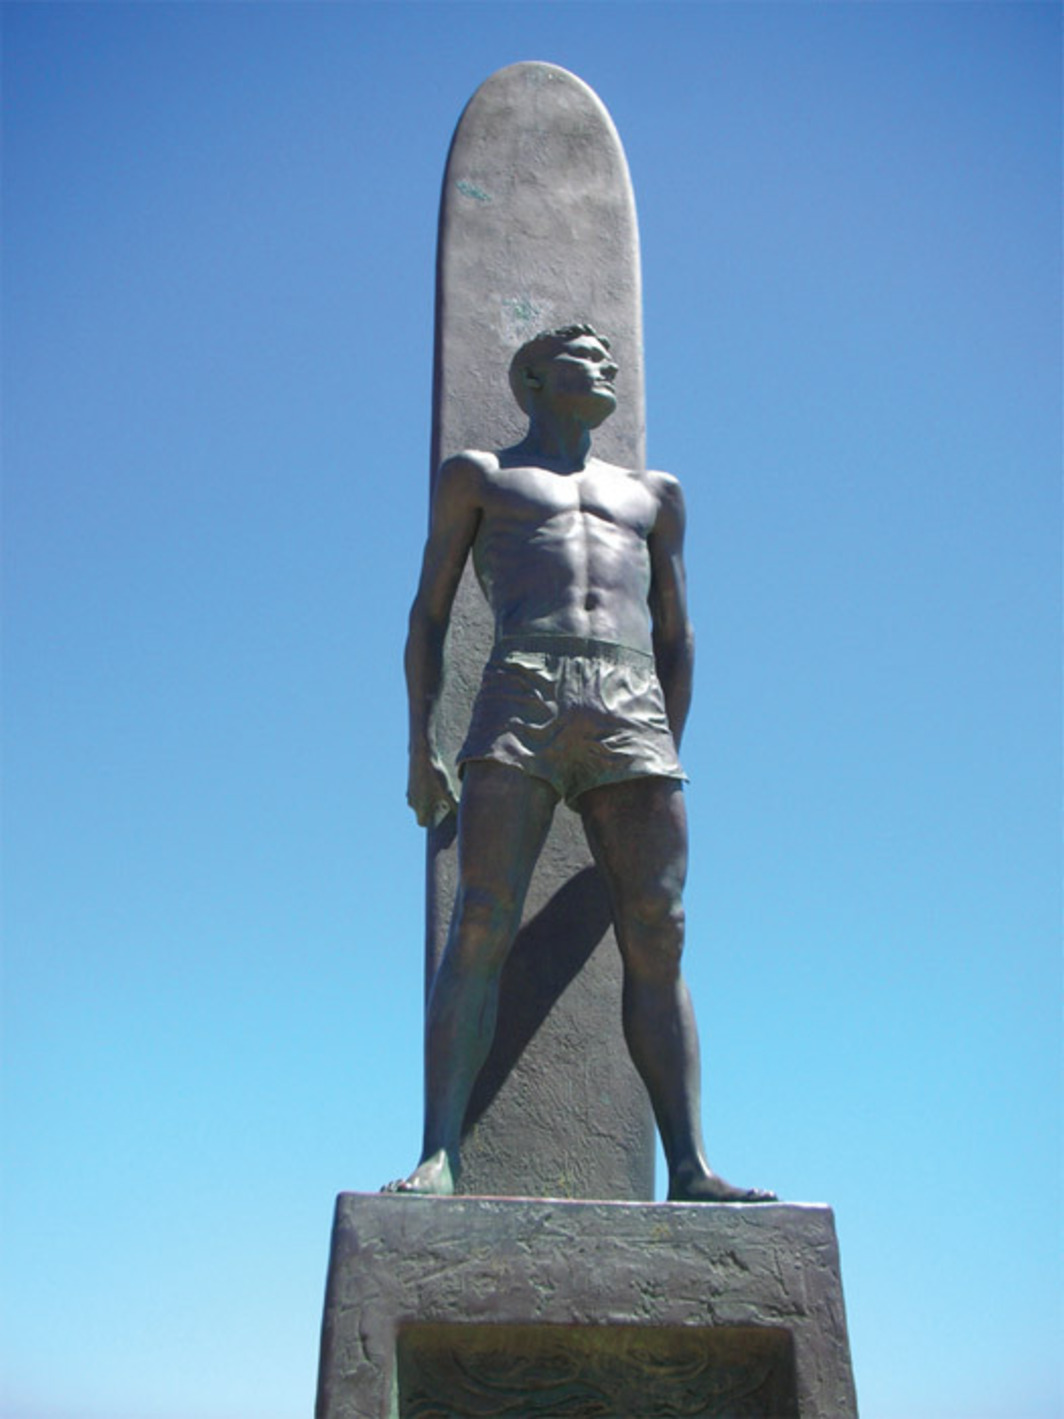 *Tom Marsh, _Monument to All Surfers, Past, Present, and Future_,* bronze. Santa Cruz, CA. Dedicated May 23, 1992.